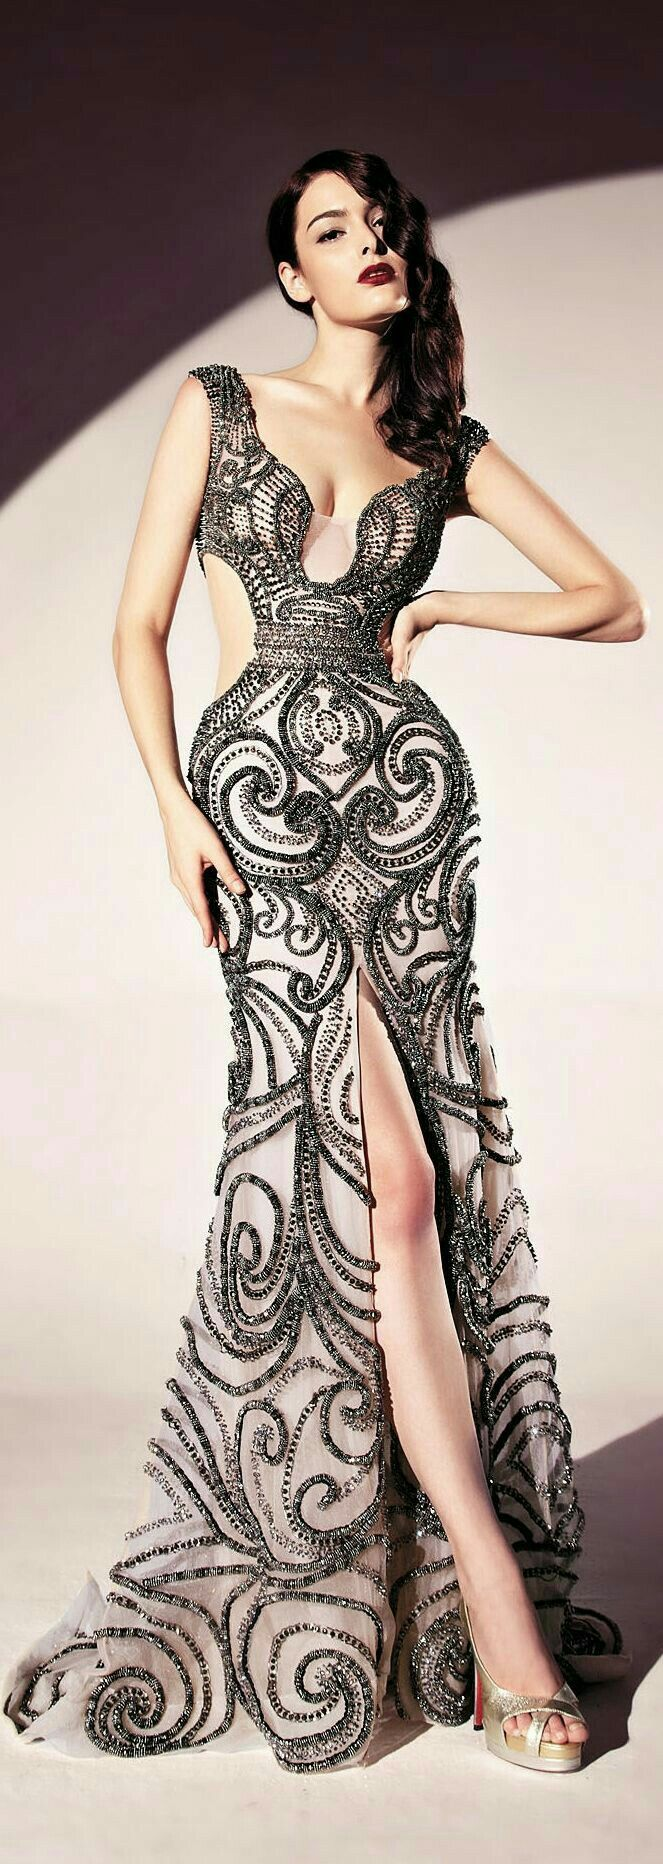 Pin by connie long on sexy clothing pinterest gowns clothes and